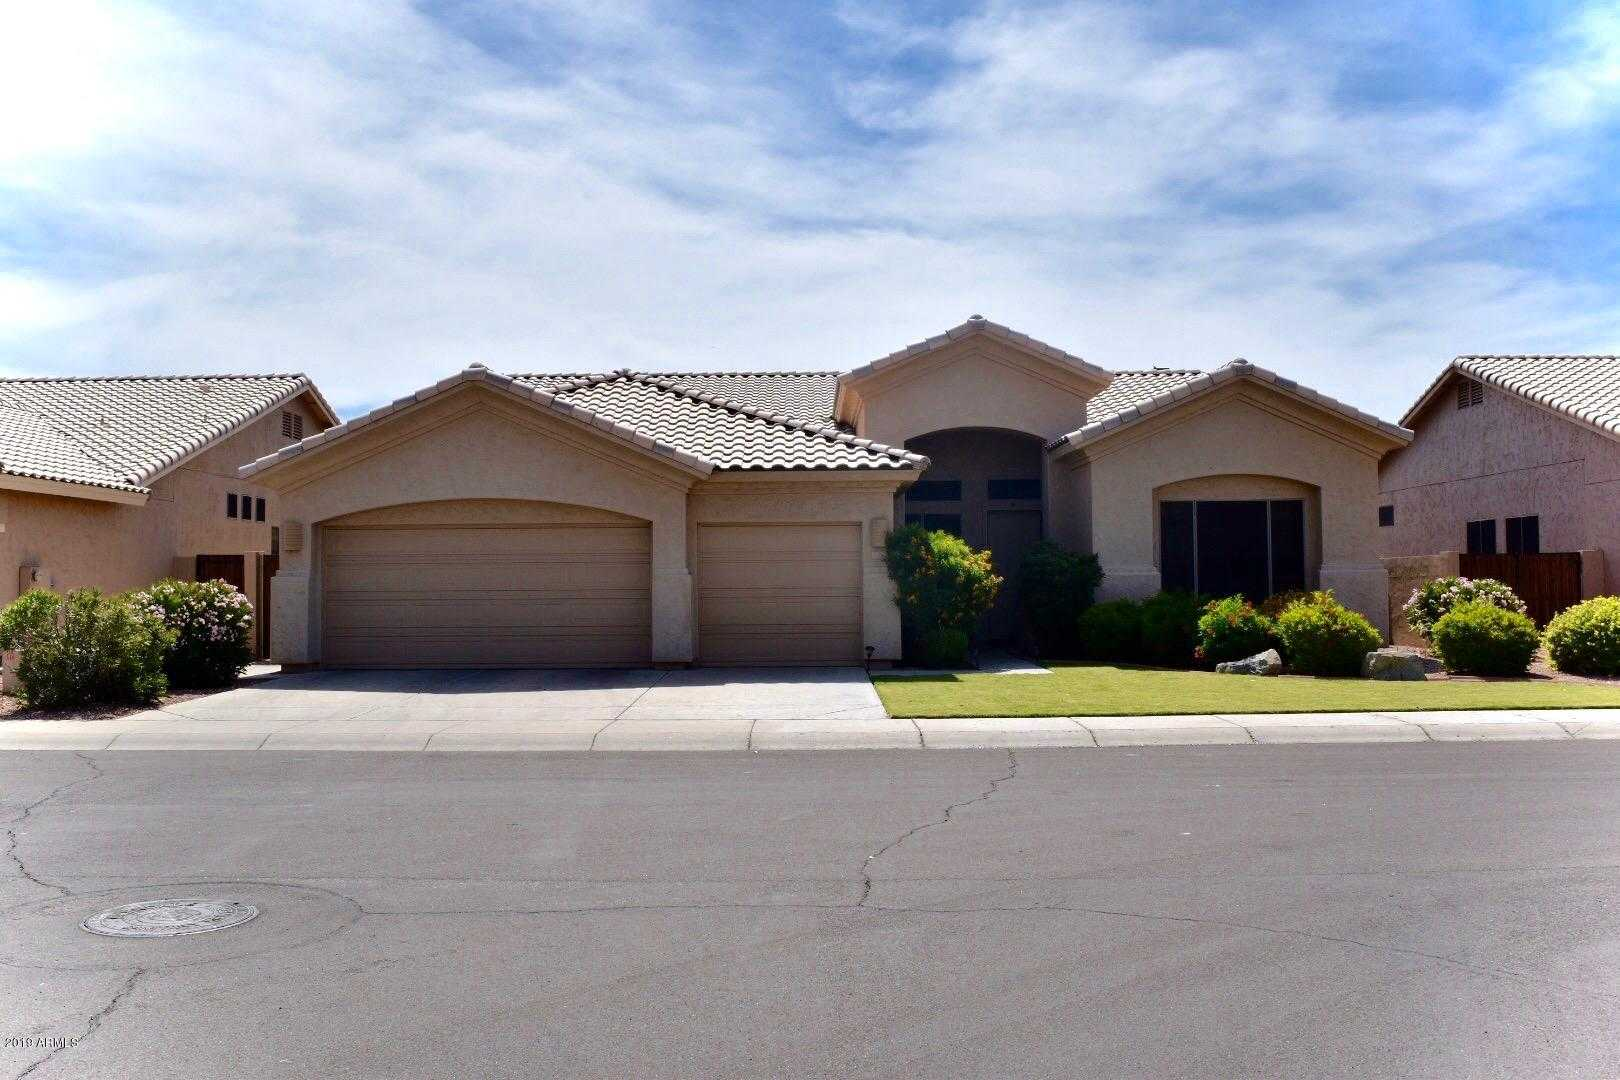 $439,000 - 3Br/2Ba - Home for Sale in Fulton Homes At Arrowhead Ranch, Glendale